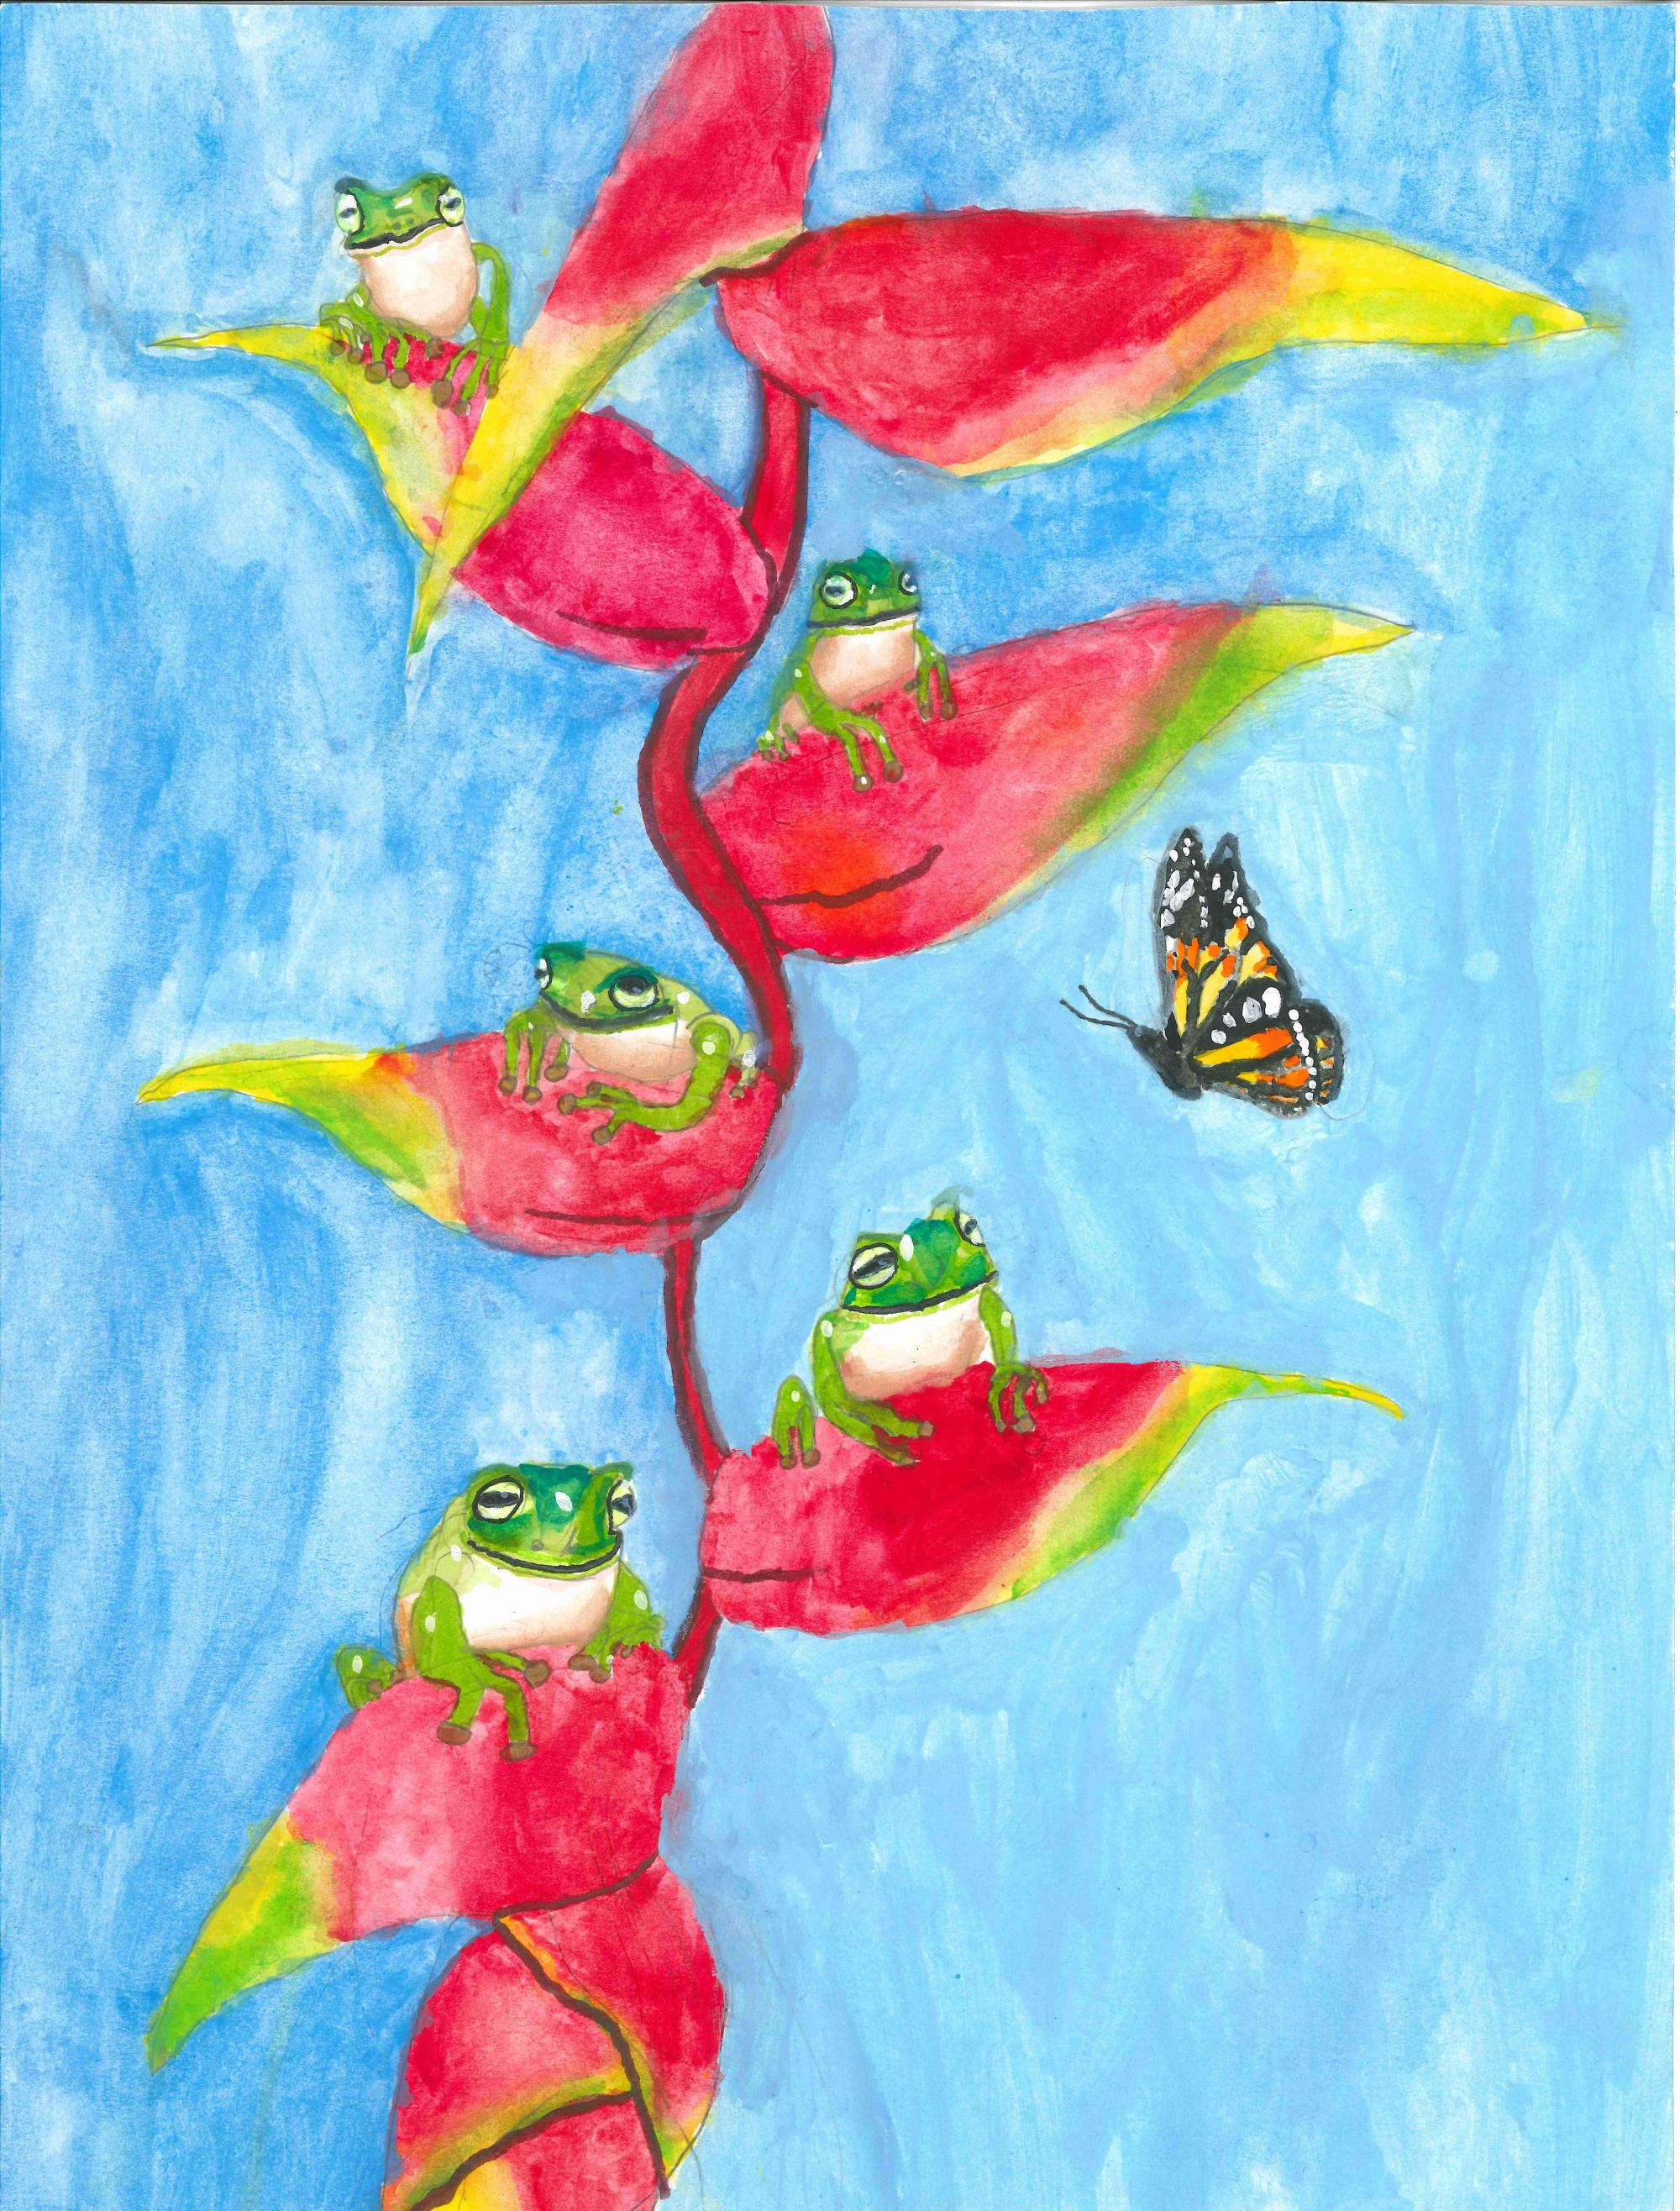 """Rainforest Party"" Chenxi (Jerry) Yu, age 8. Atlanta, Georgia. United States. Shijun Art Studio. Teacher: Shijun Munns. River of Words 2018 Finalist."